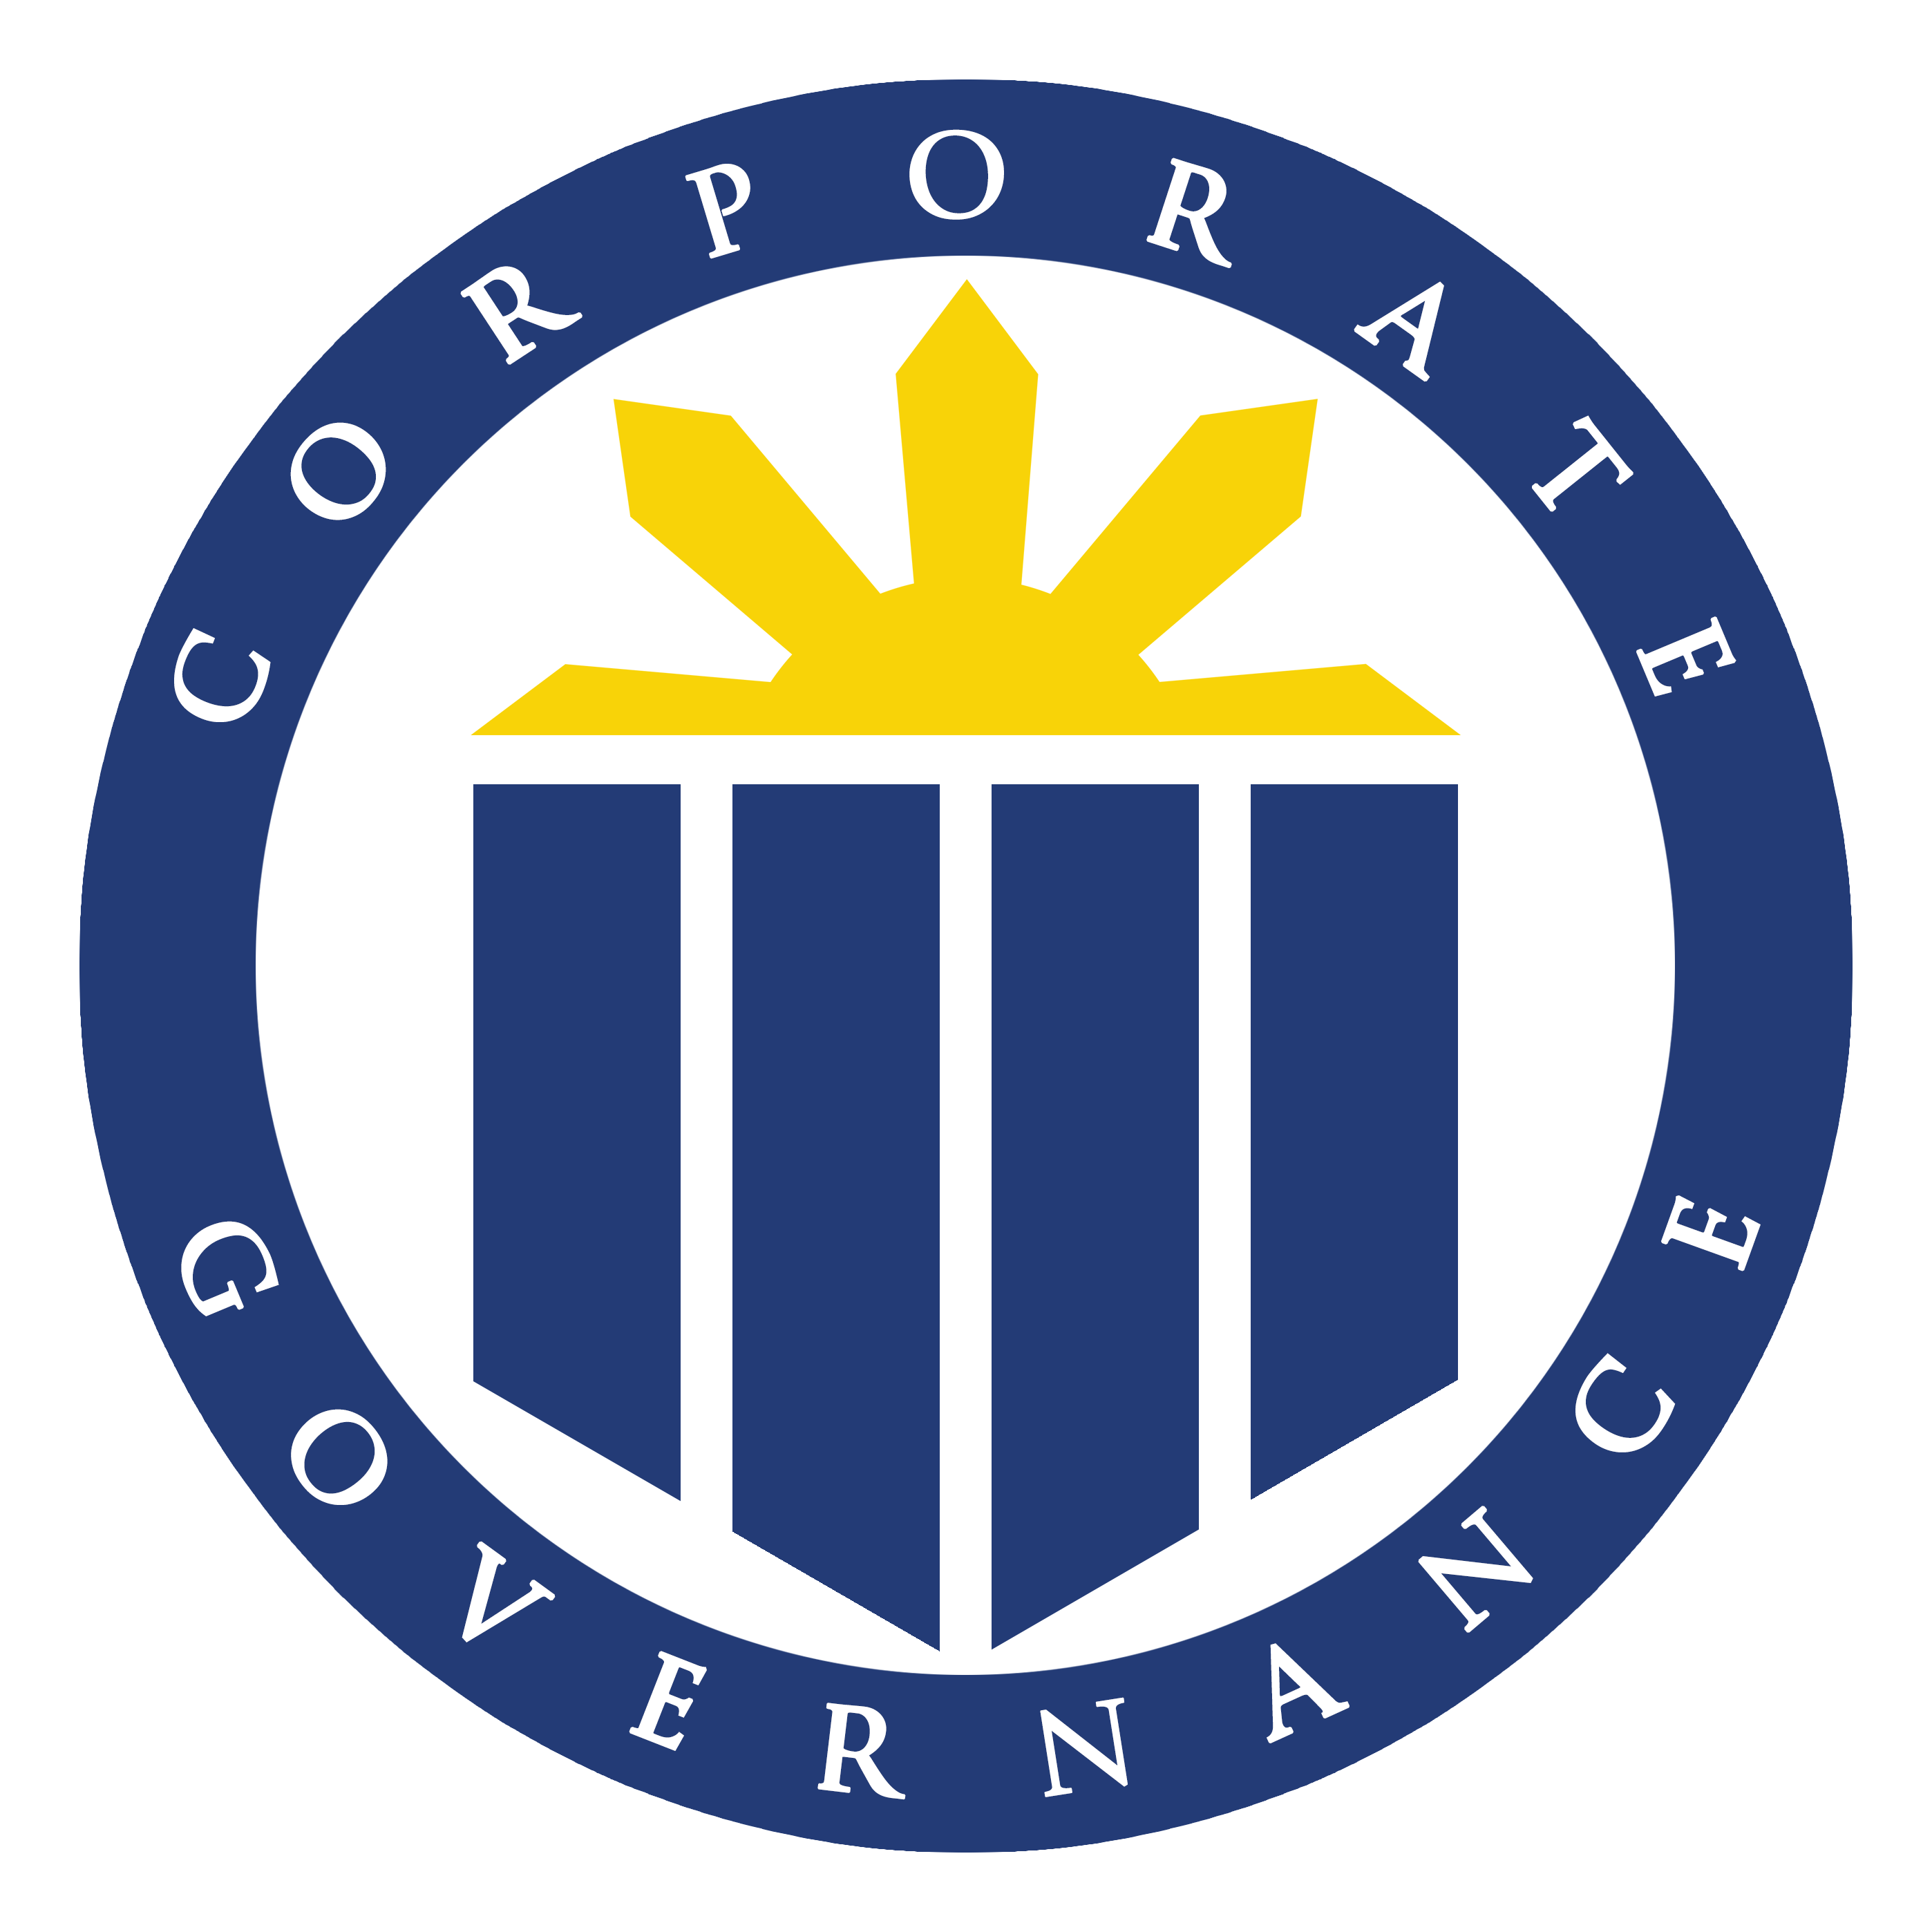 Corporate governance . Government clipart government philippine